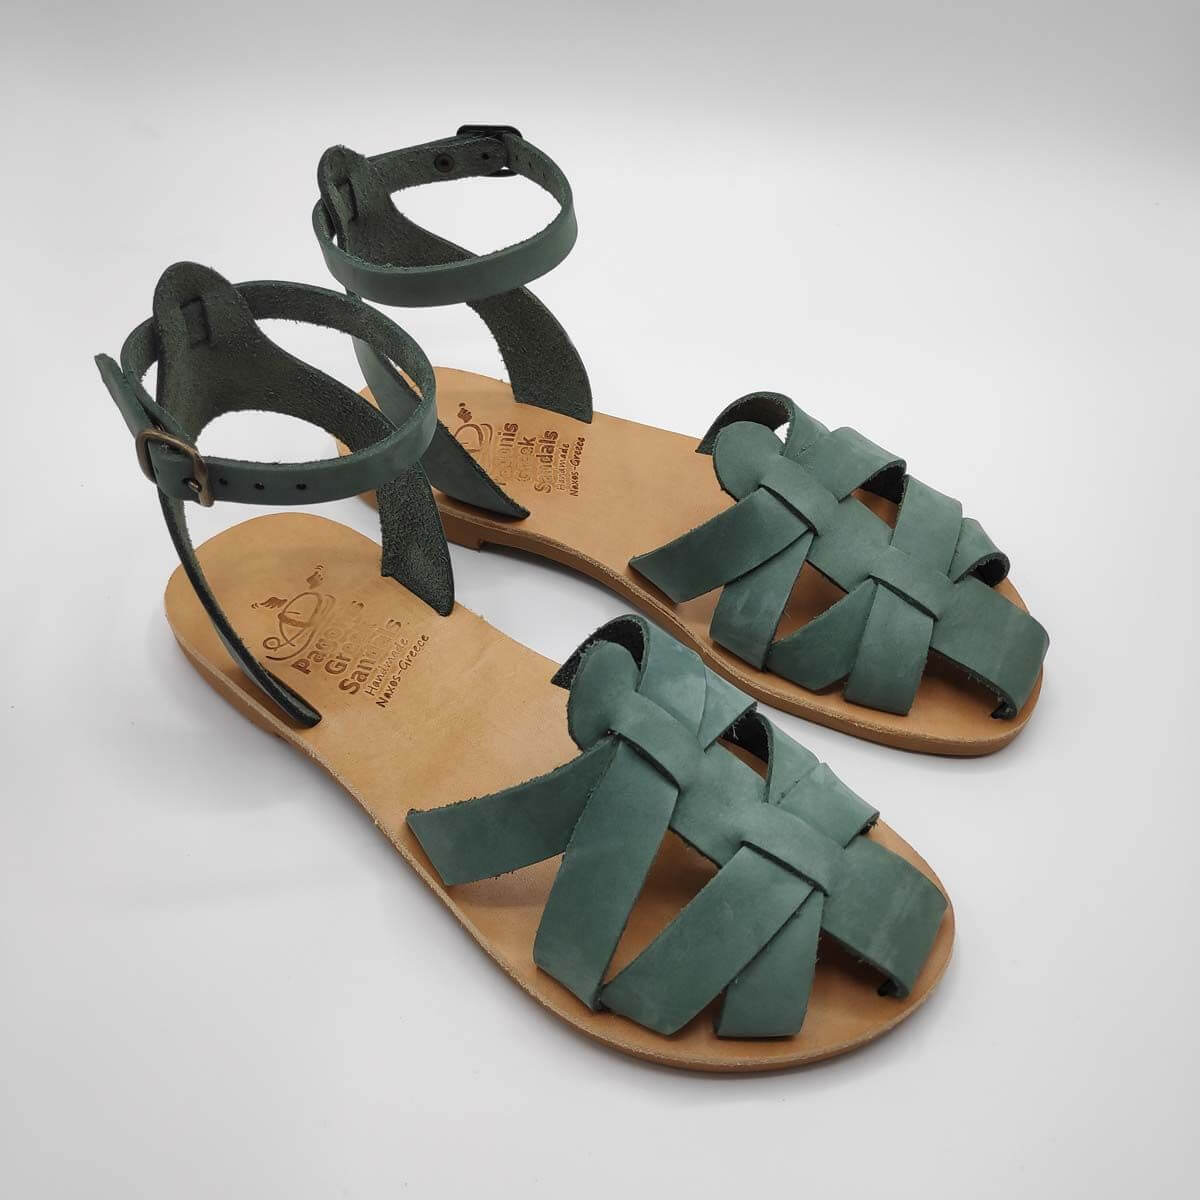 Lefkoni Closed Toe Leather Sandals | Pagonis Greek Sandals